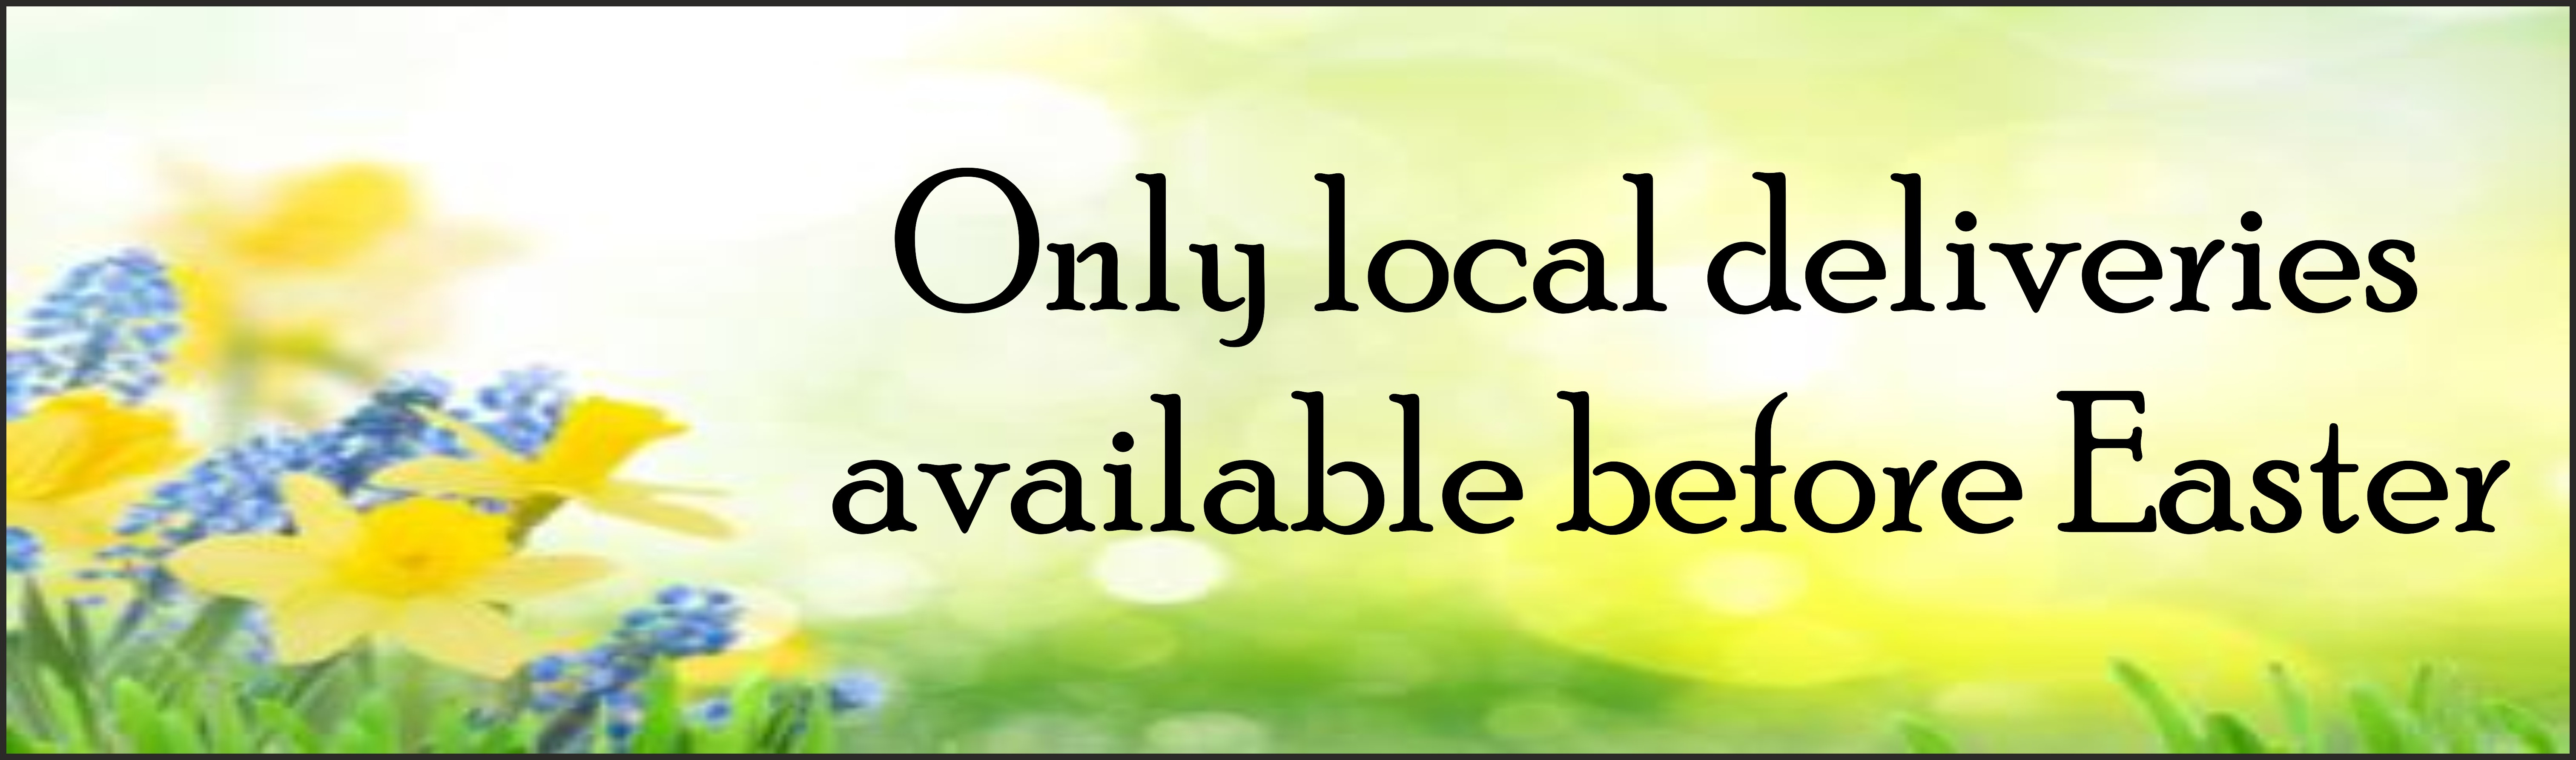 only Local Deliveries available before Easter